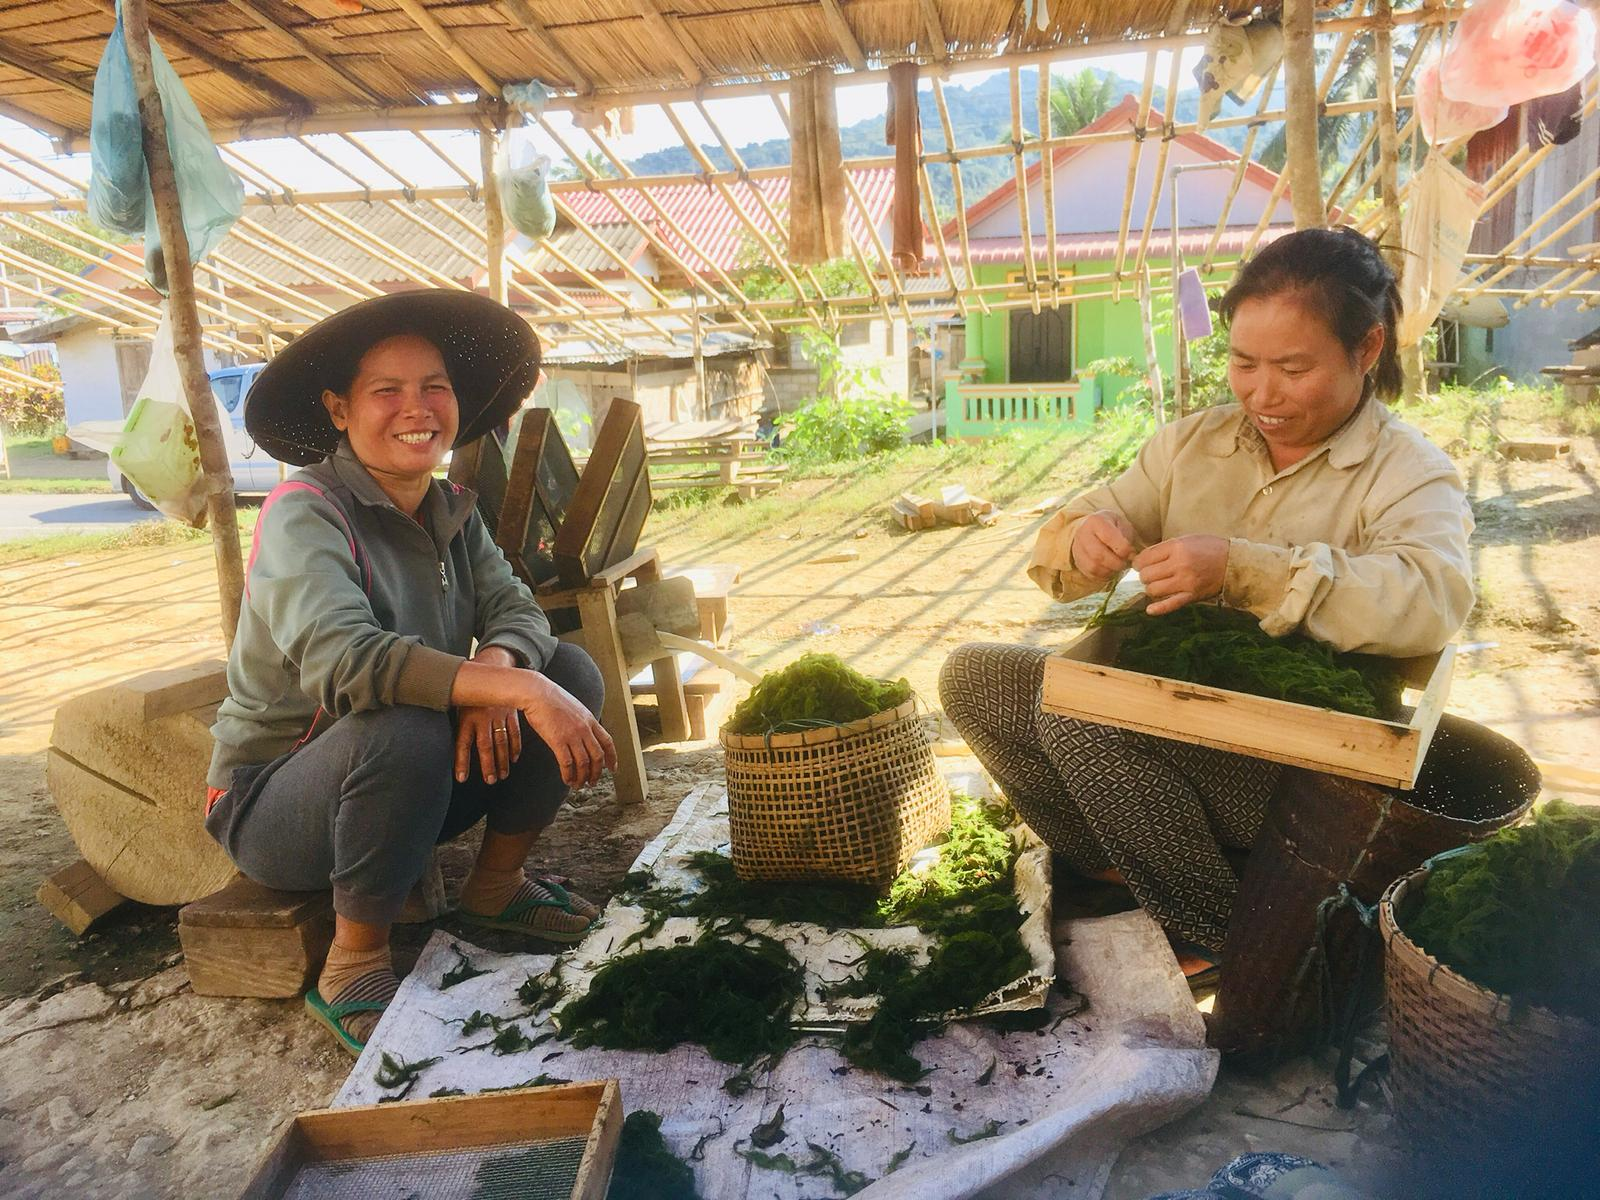 Rural life in Indochina, Asia